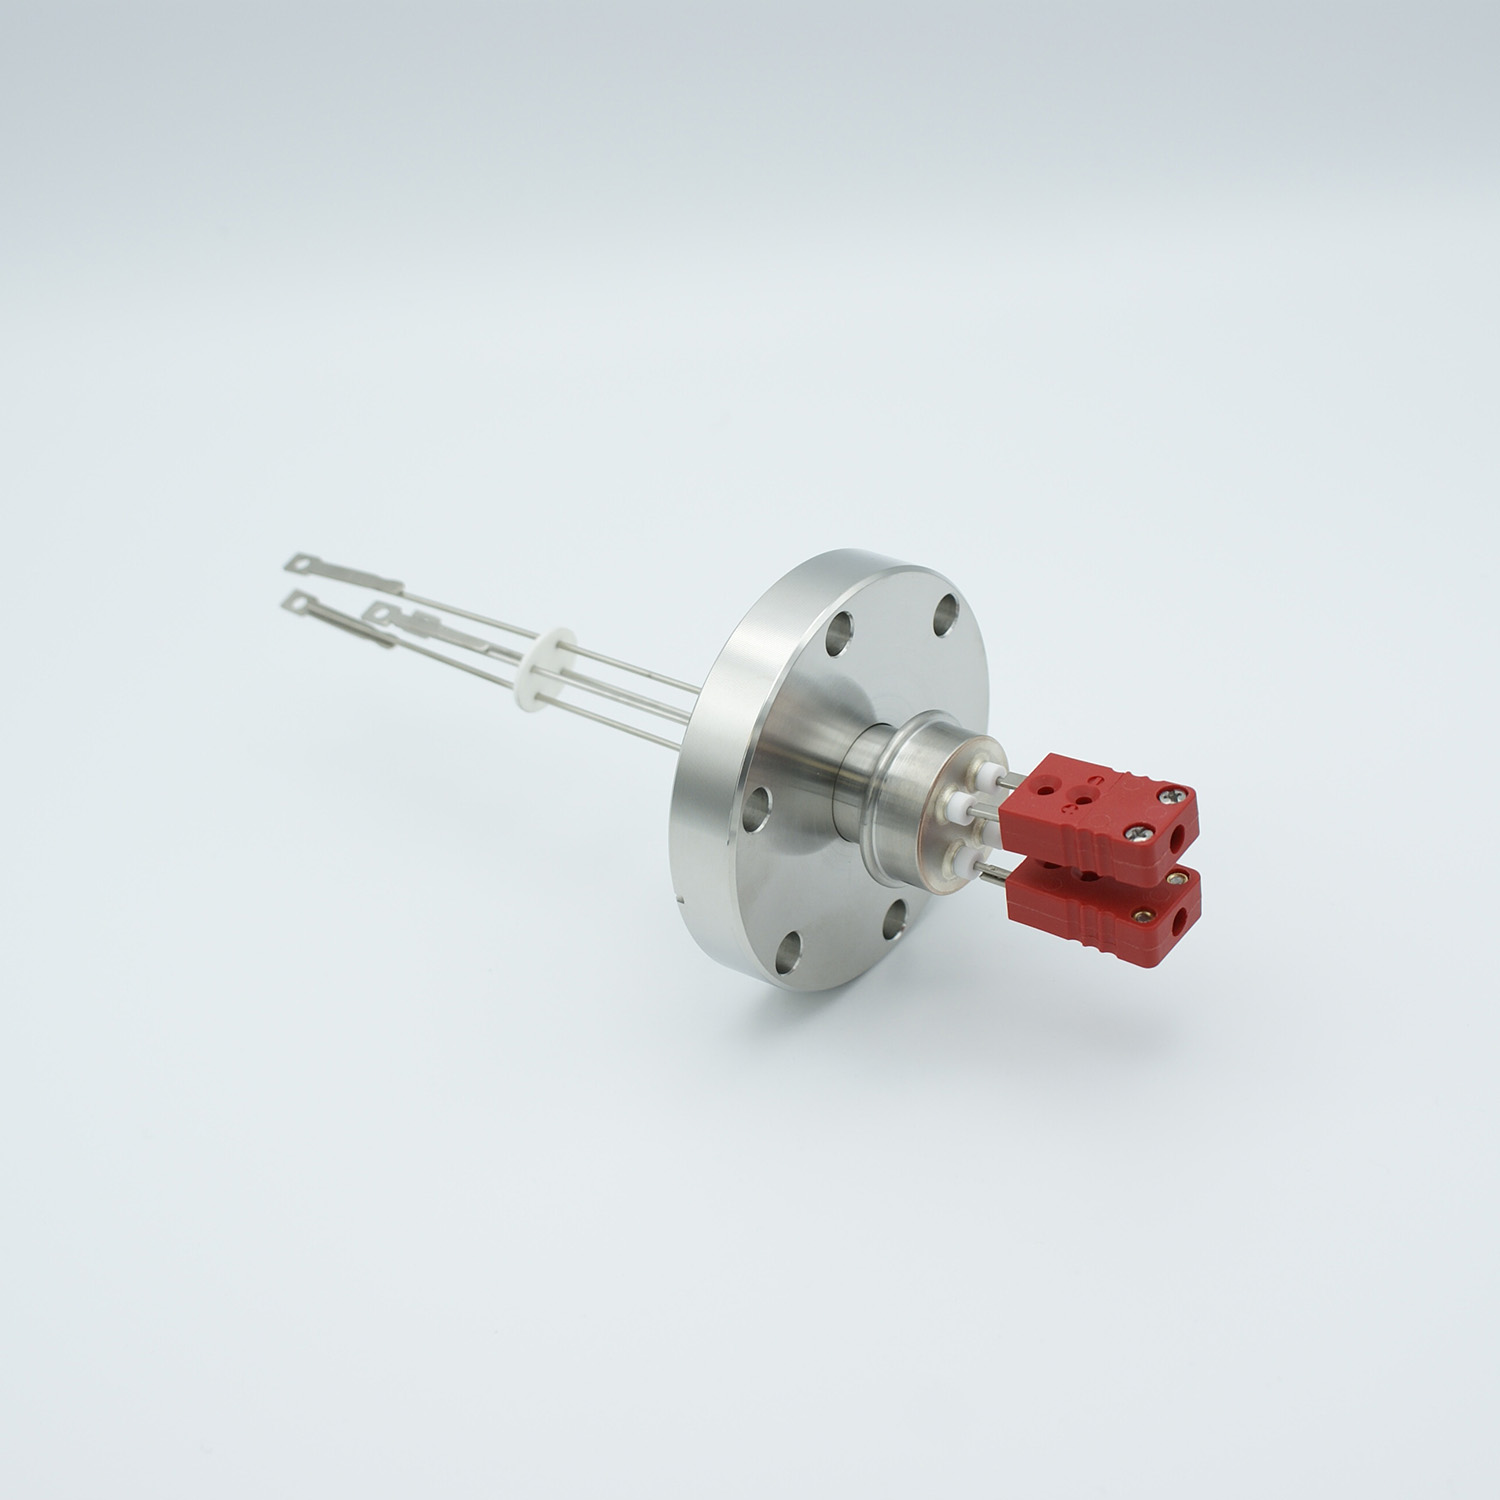 2 pair Thermocouple type-C feedthrough with both side connectors included, DN40CF flange